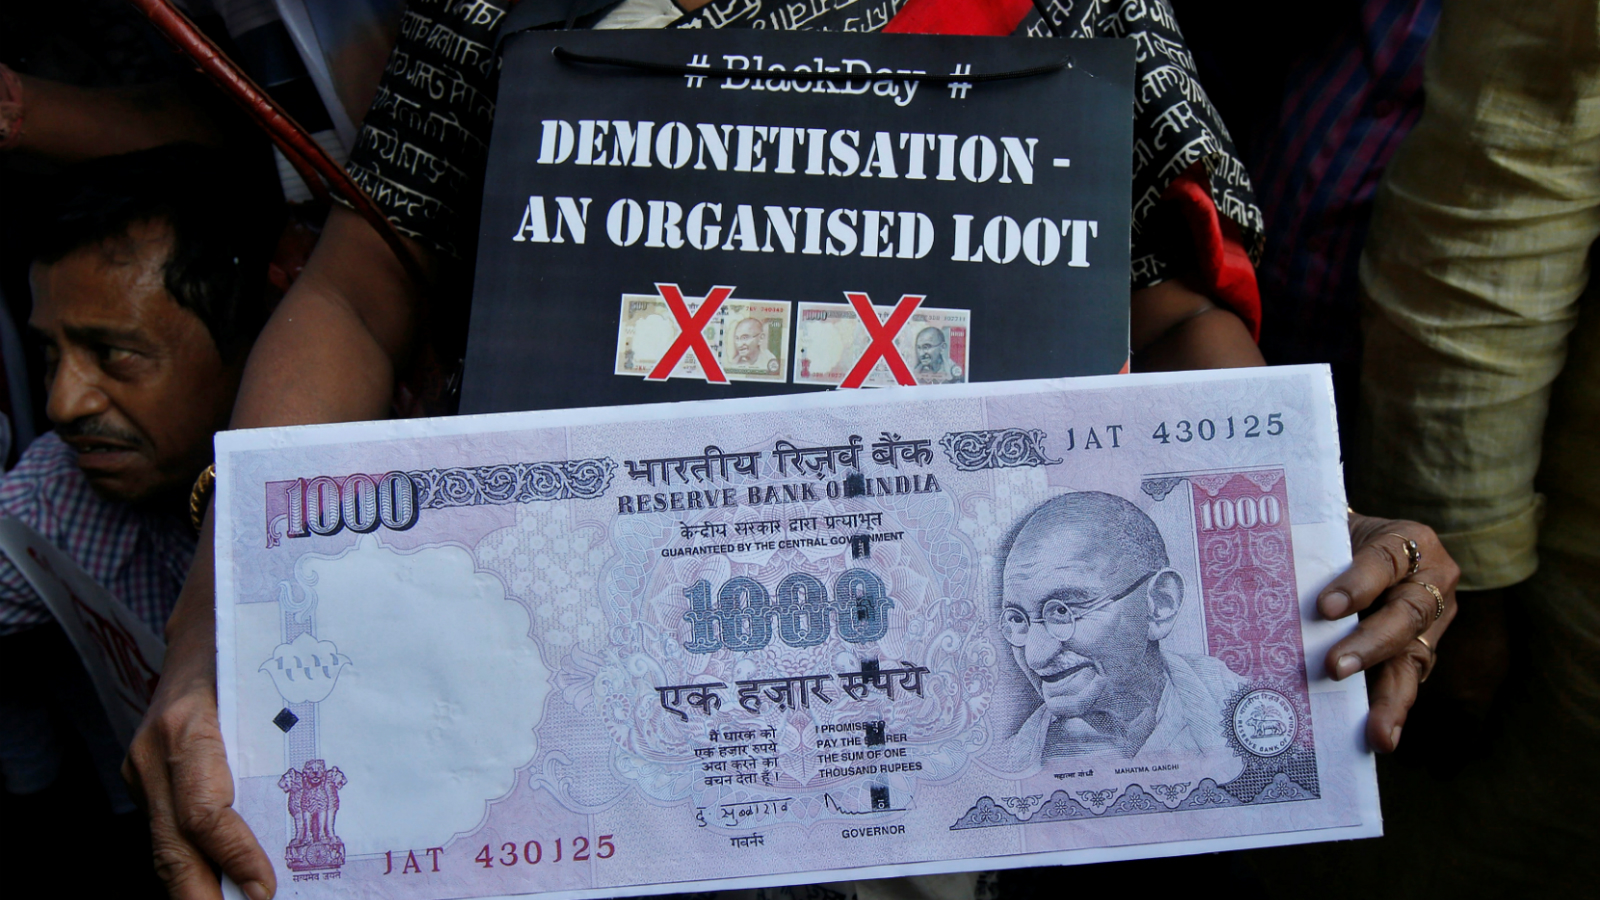 A demonstrator holds a replica of an abolished 1000 ruppee note during a protest, organised by India's main opposition Congress party, to mark a year since demonetisation was implemented by Prime Minister Narendra Modi, in Kolkata, India, November 8, 2017